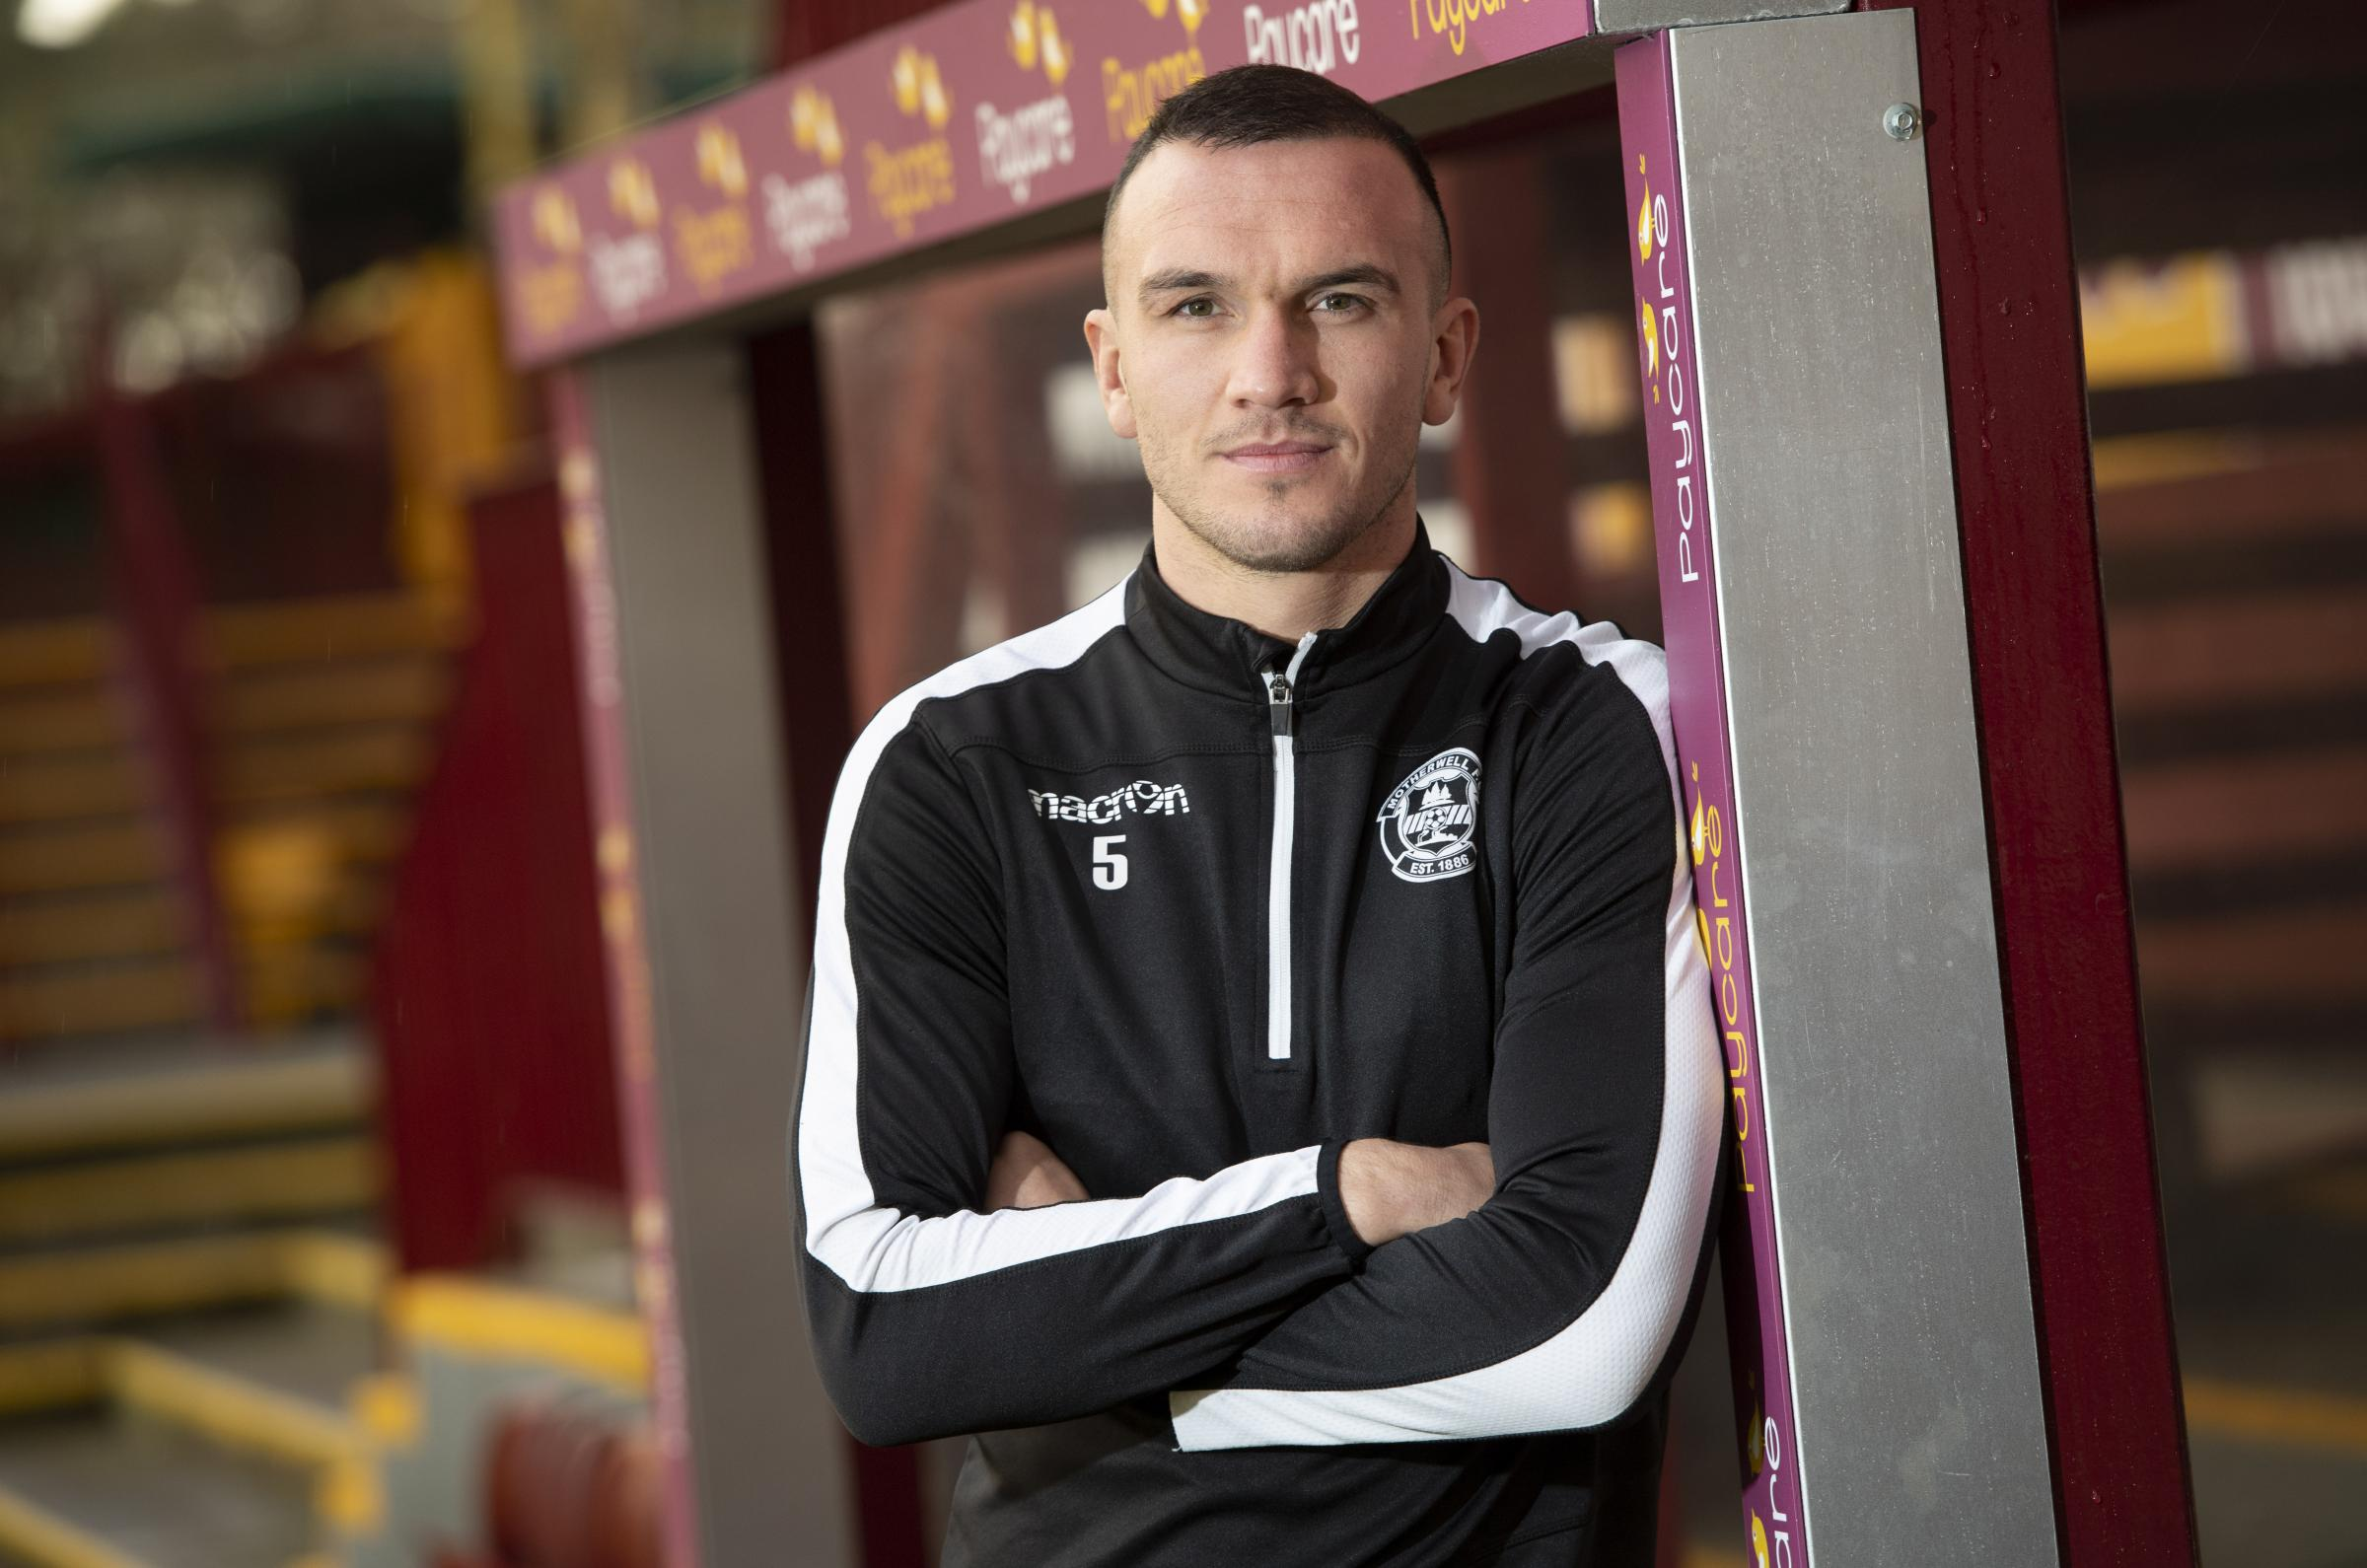 Motherwell's Tom Alfred looks ahead to his side's game against Celtic